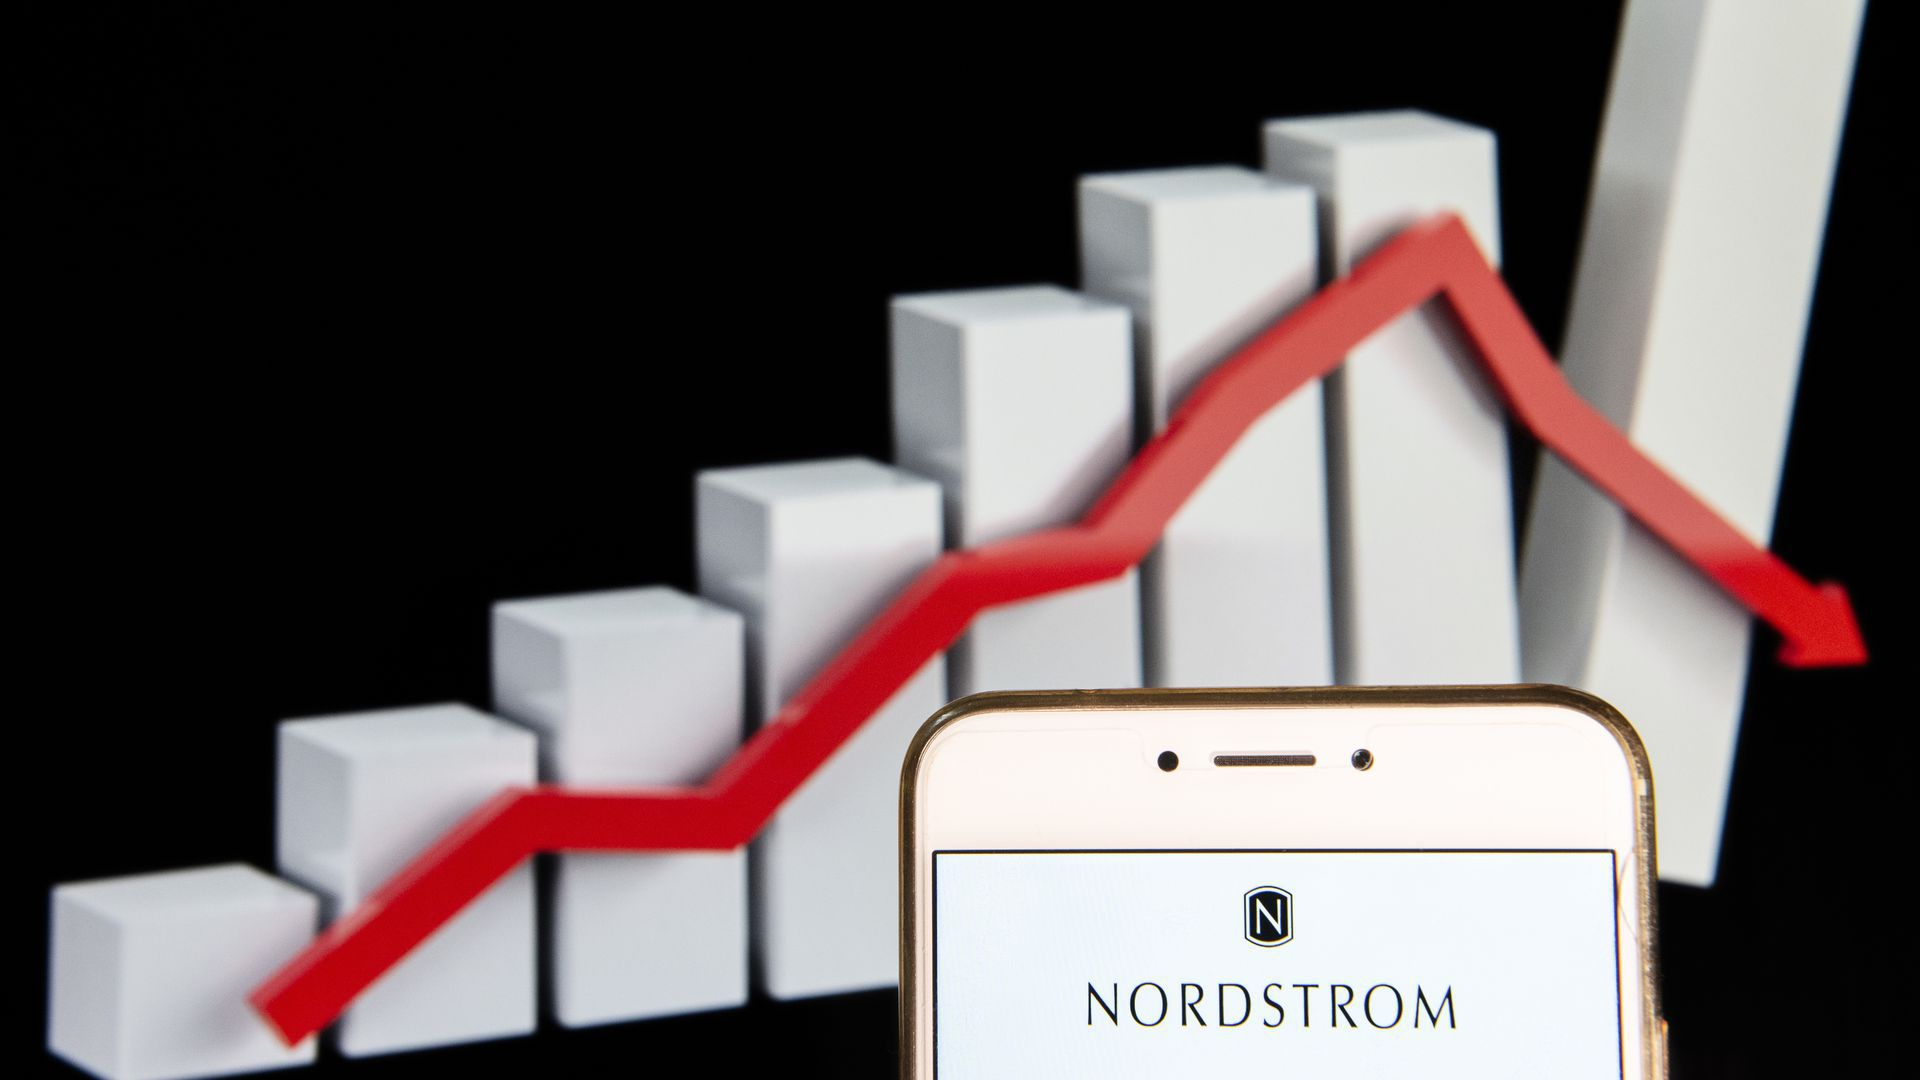 A bar graph with a phone that has Nordstom's logo on it